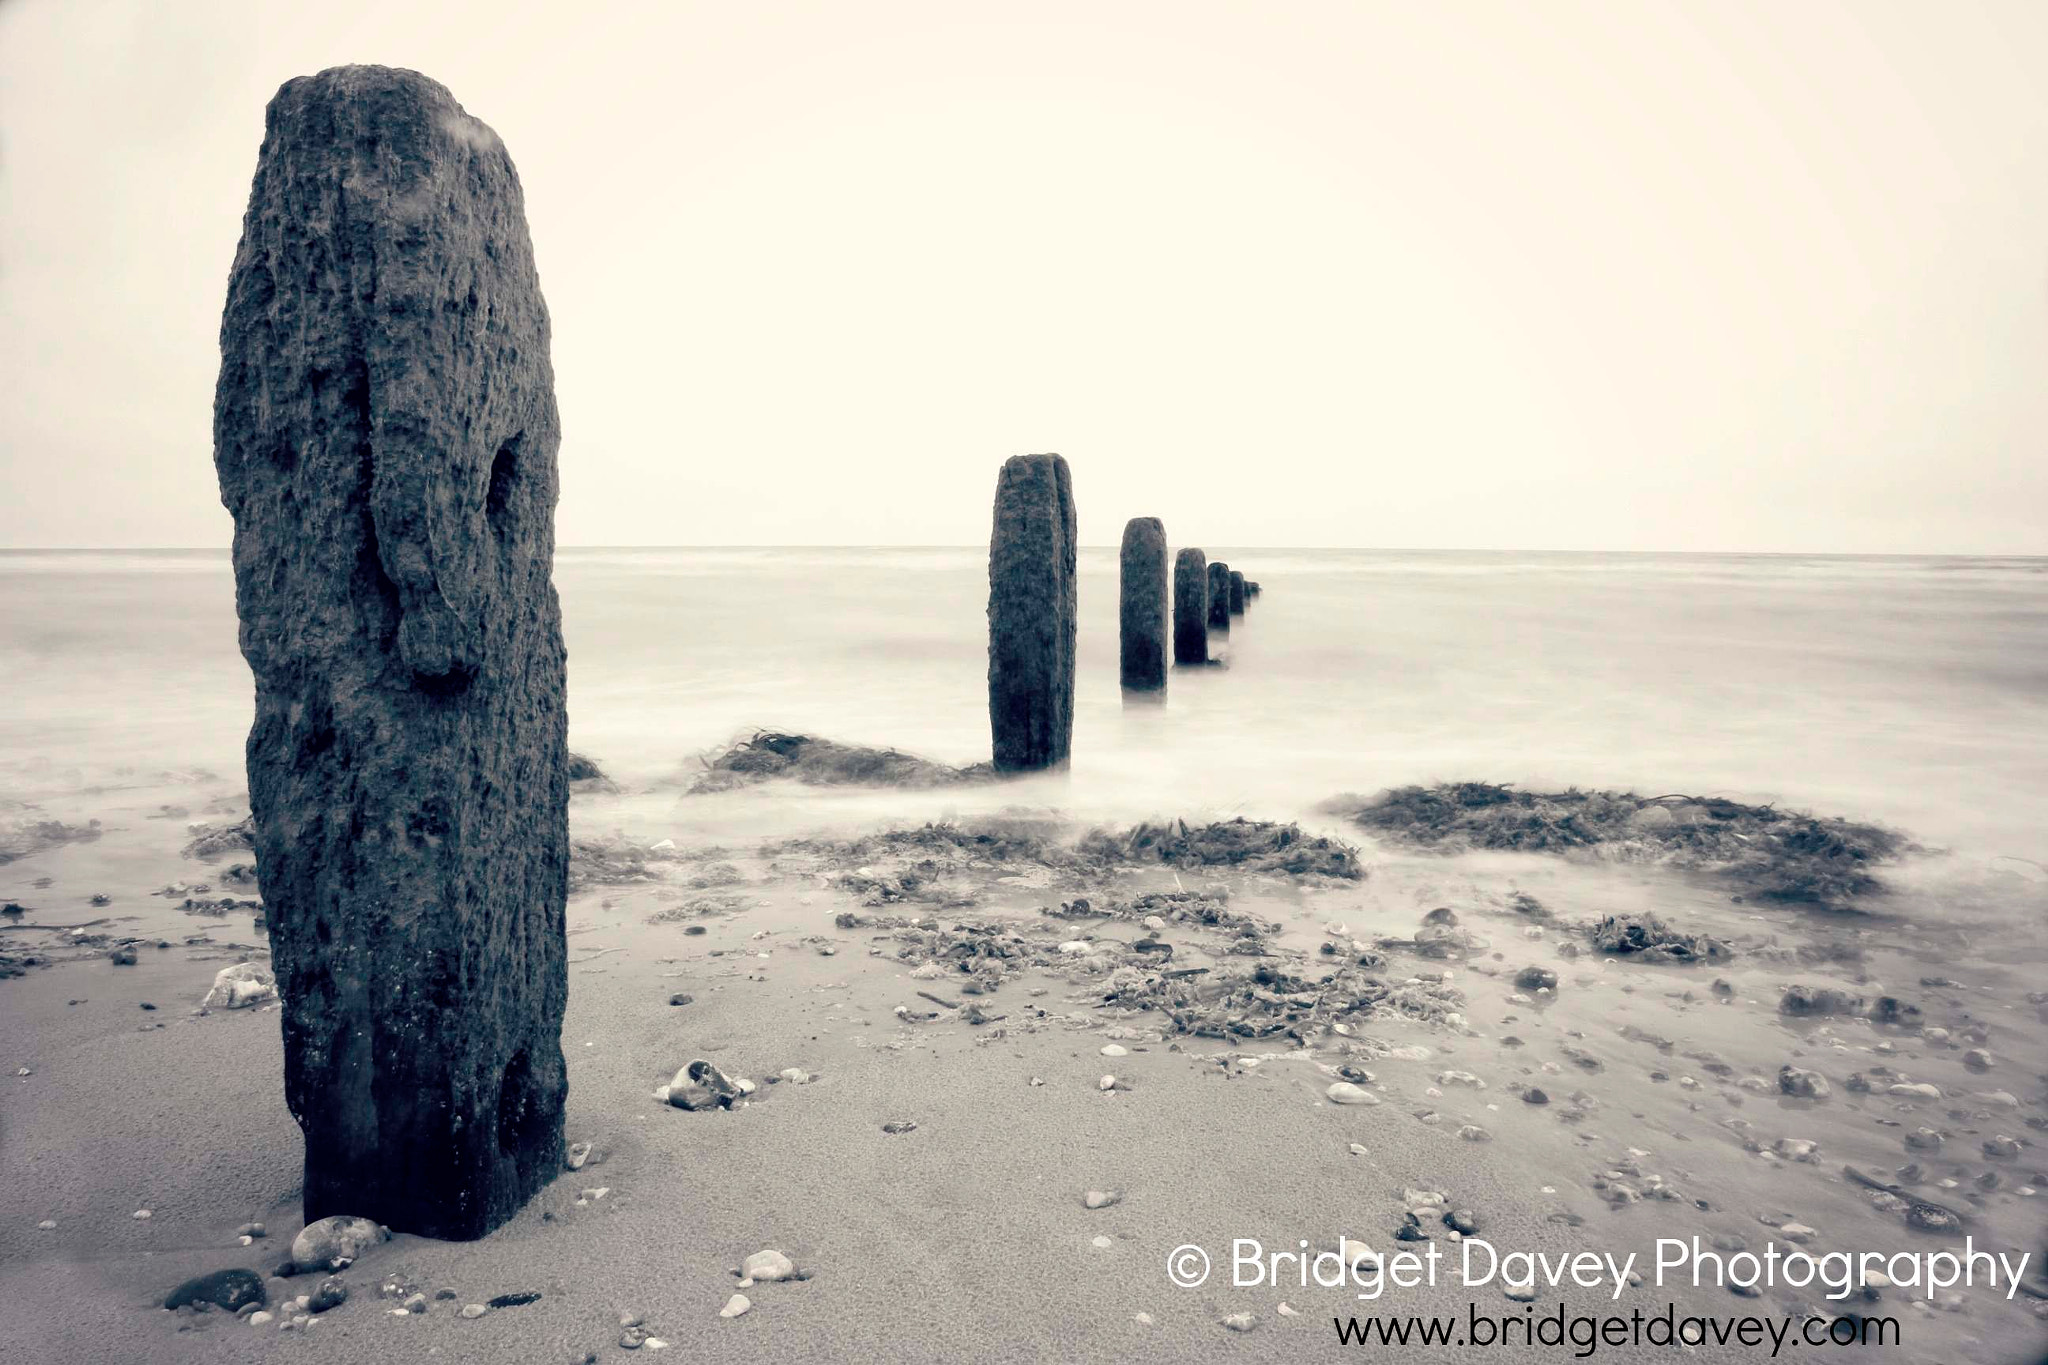 Photograph Camber Sands by Bridget Davey on 500px